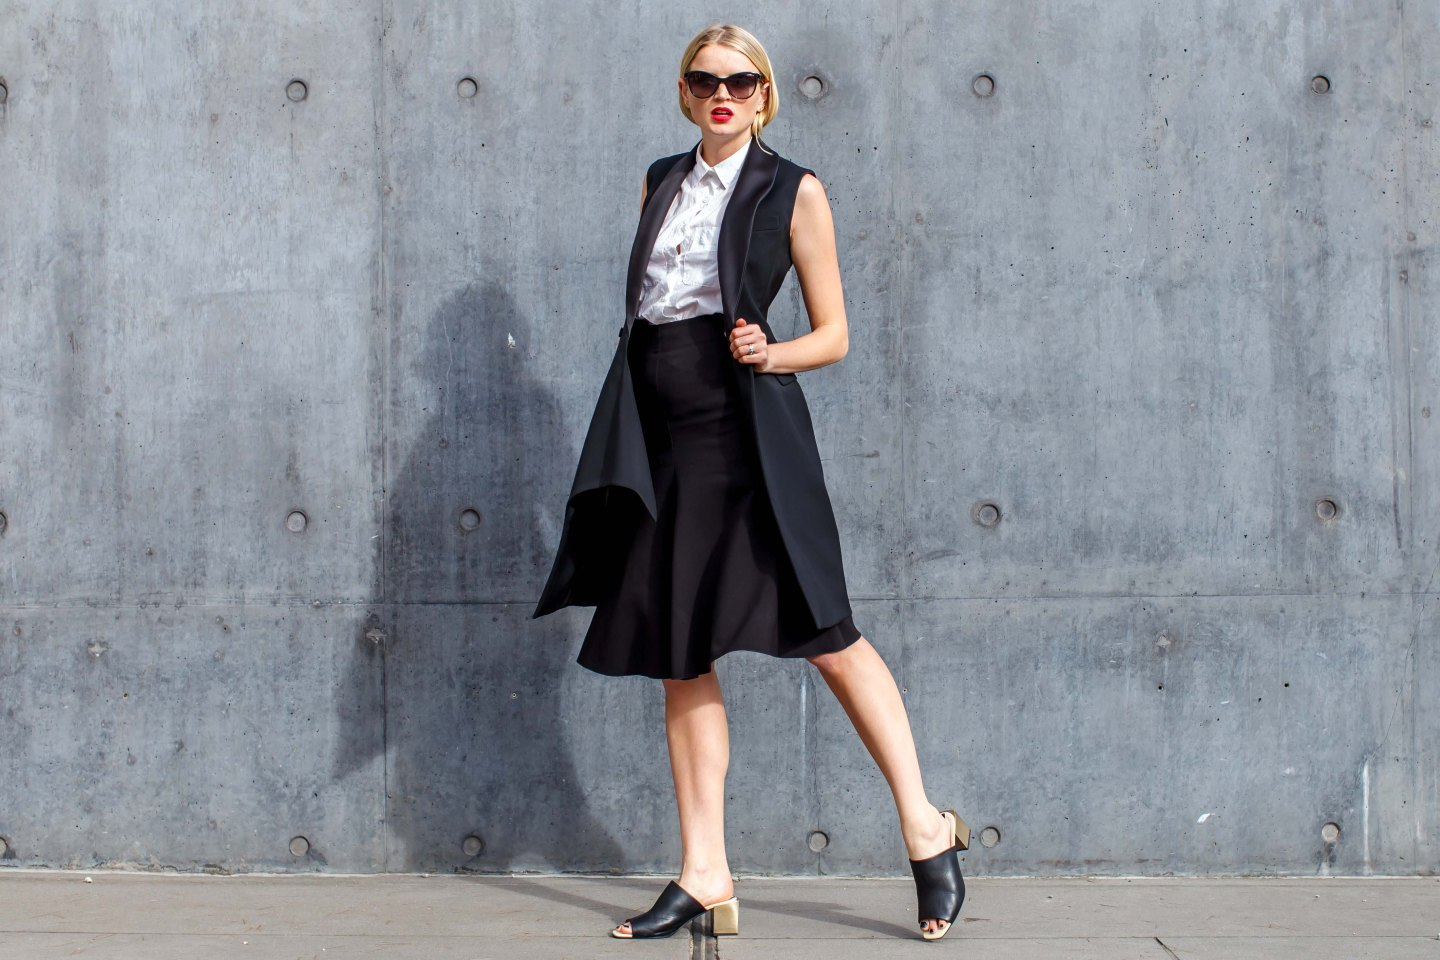 Suit, monochrome, shirt, tuxedo, jacket, waistcoat dress, skirt, mules, shoes, women's wear, street style, your ensemble, yourensemble, yourensemble.com